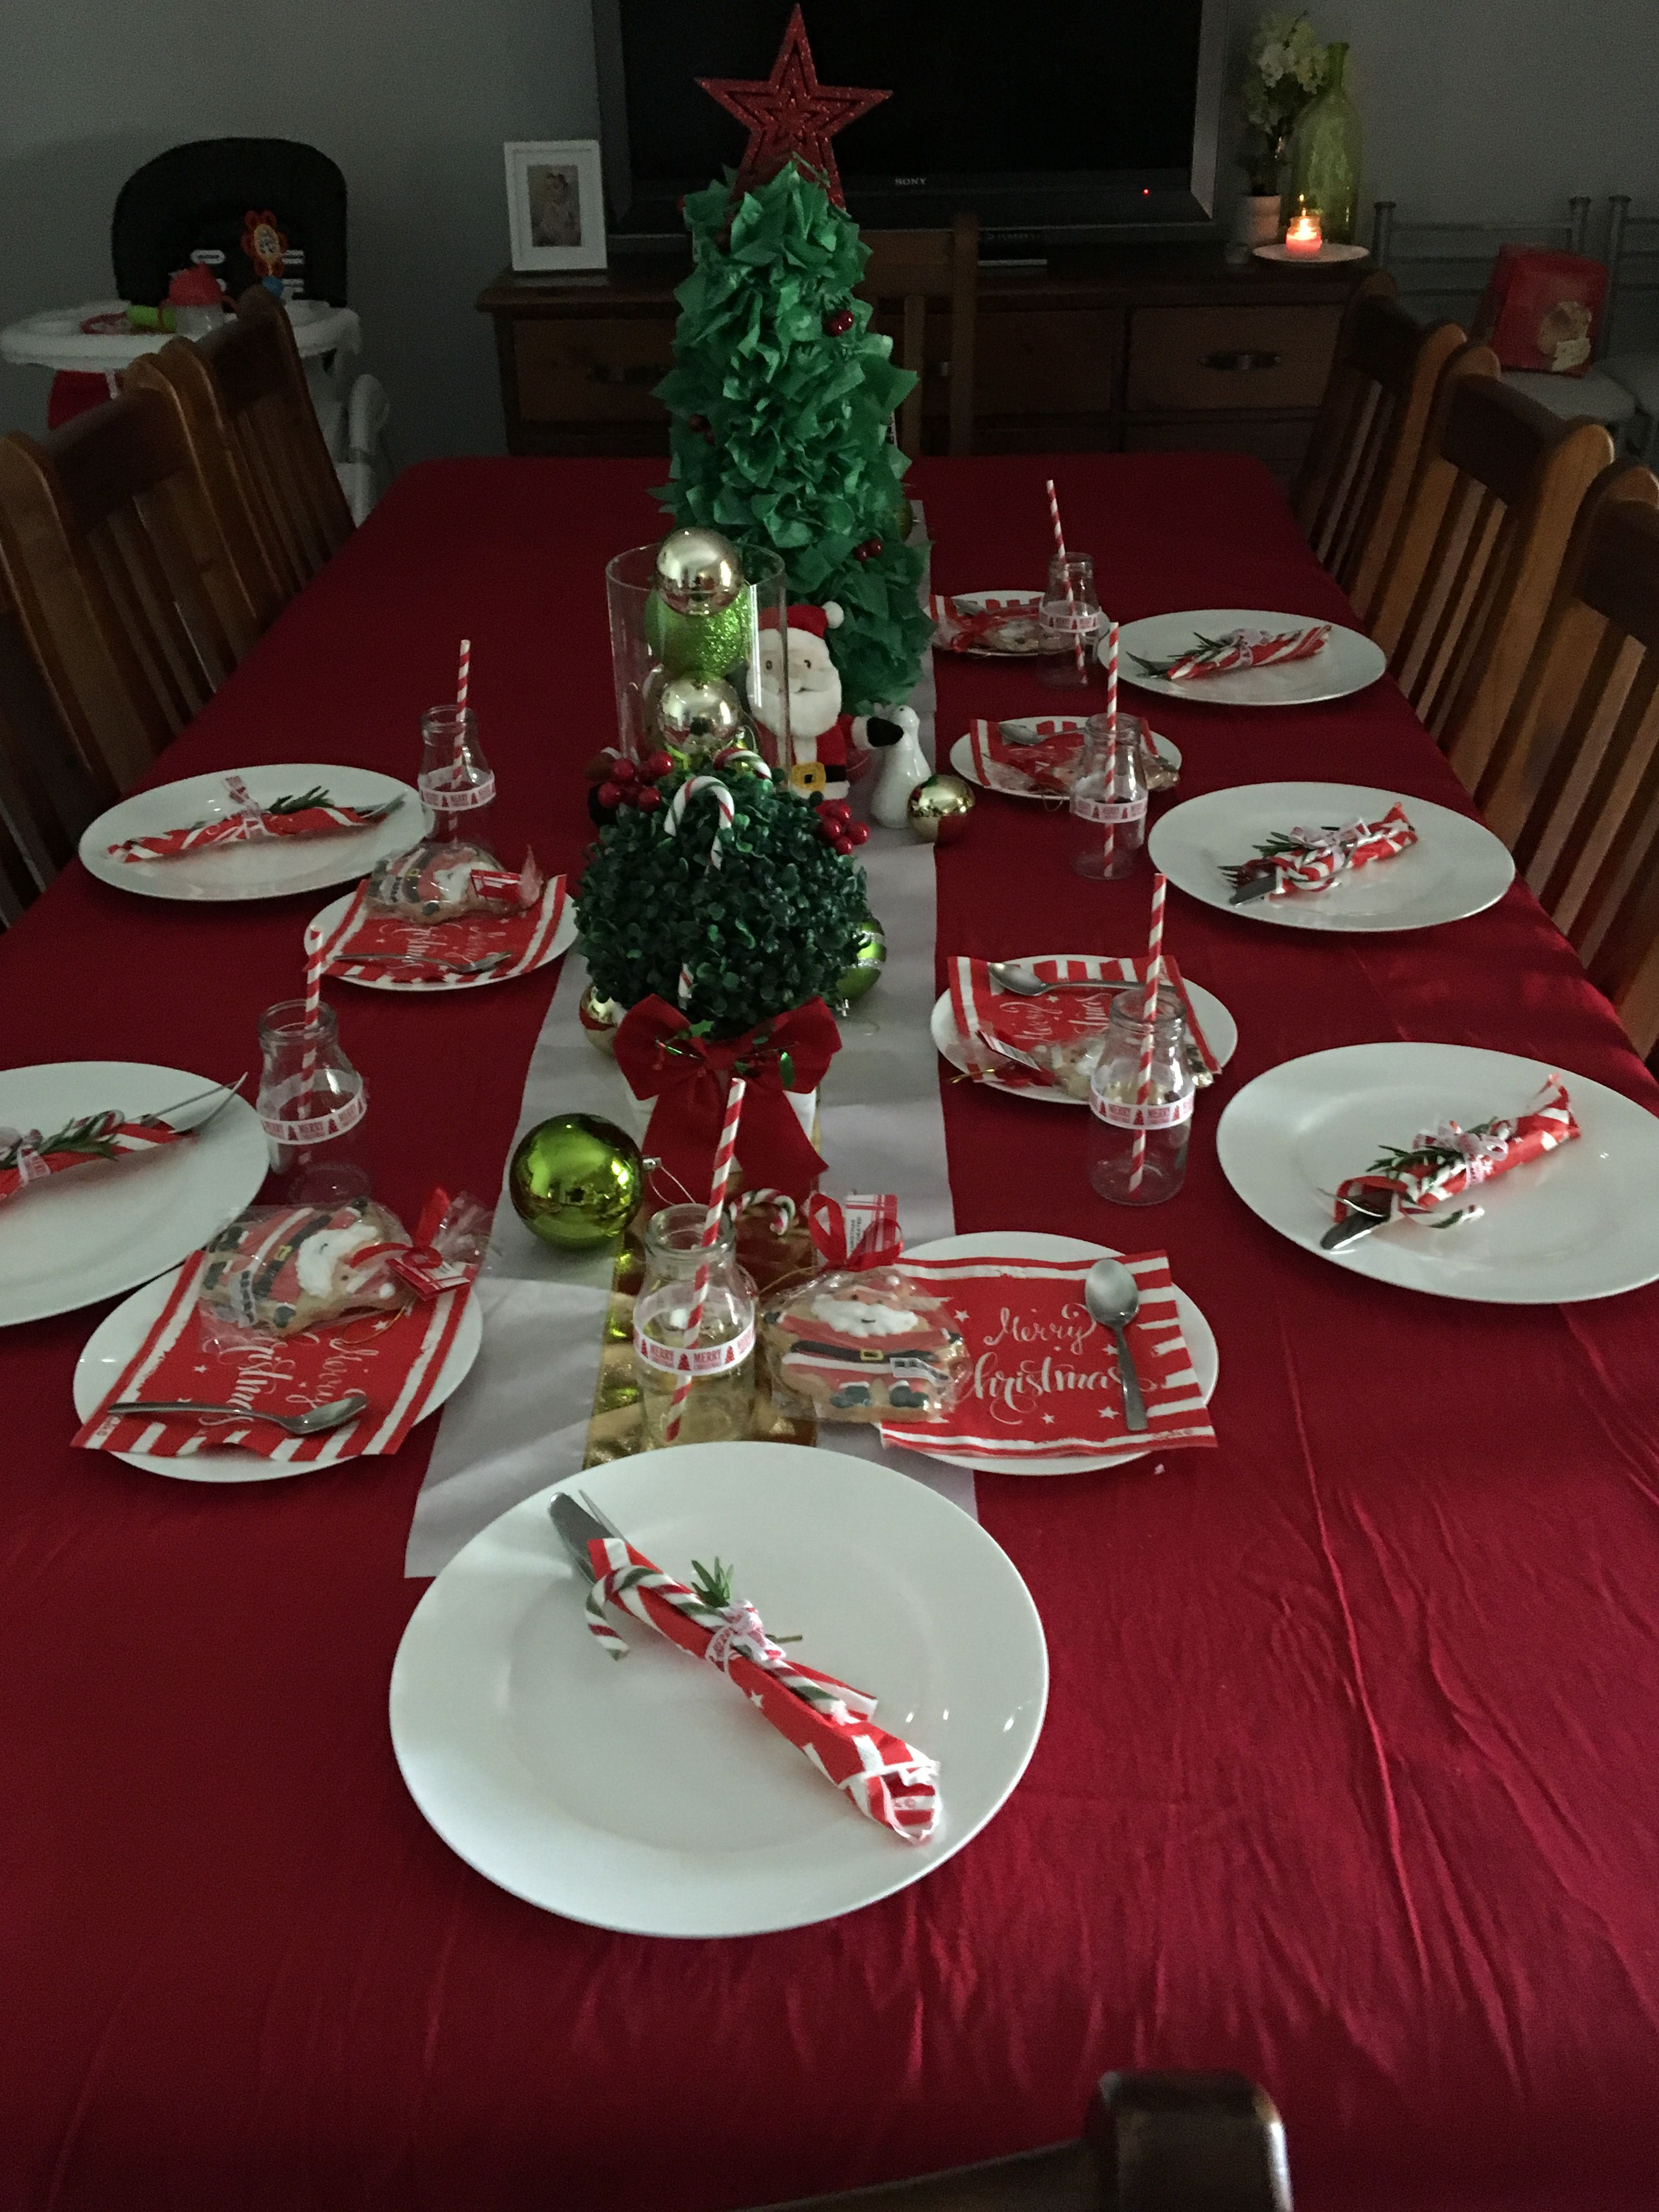 Table Setting Christmas Red White Green And Gold Christmas Table Settings Christmas Table Table Settings